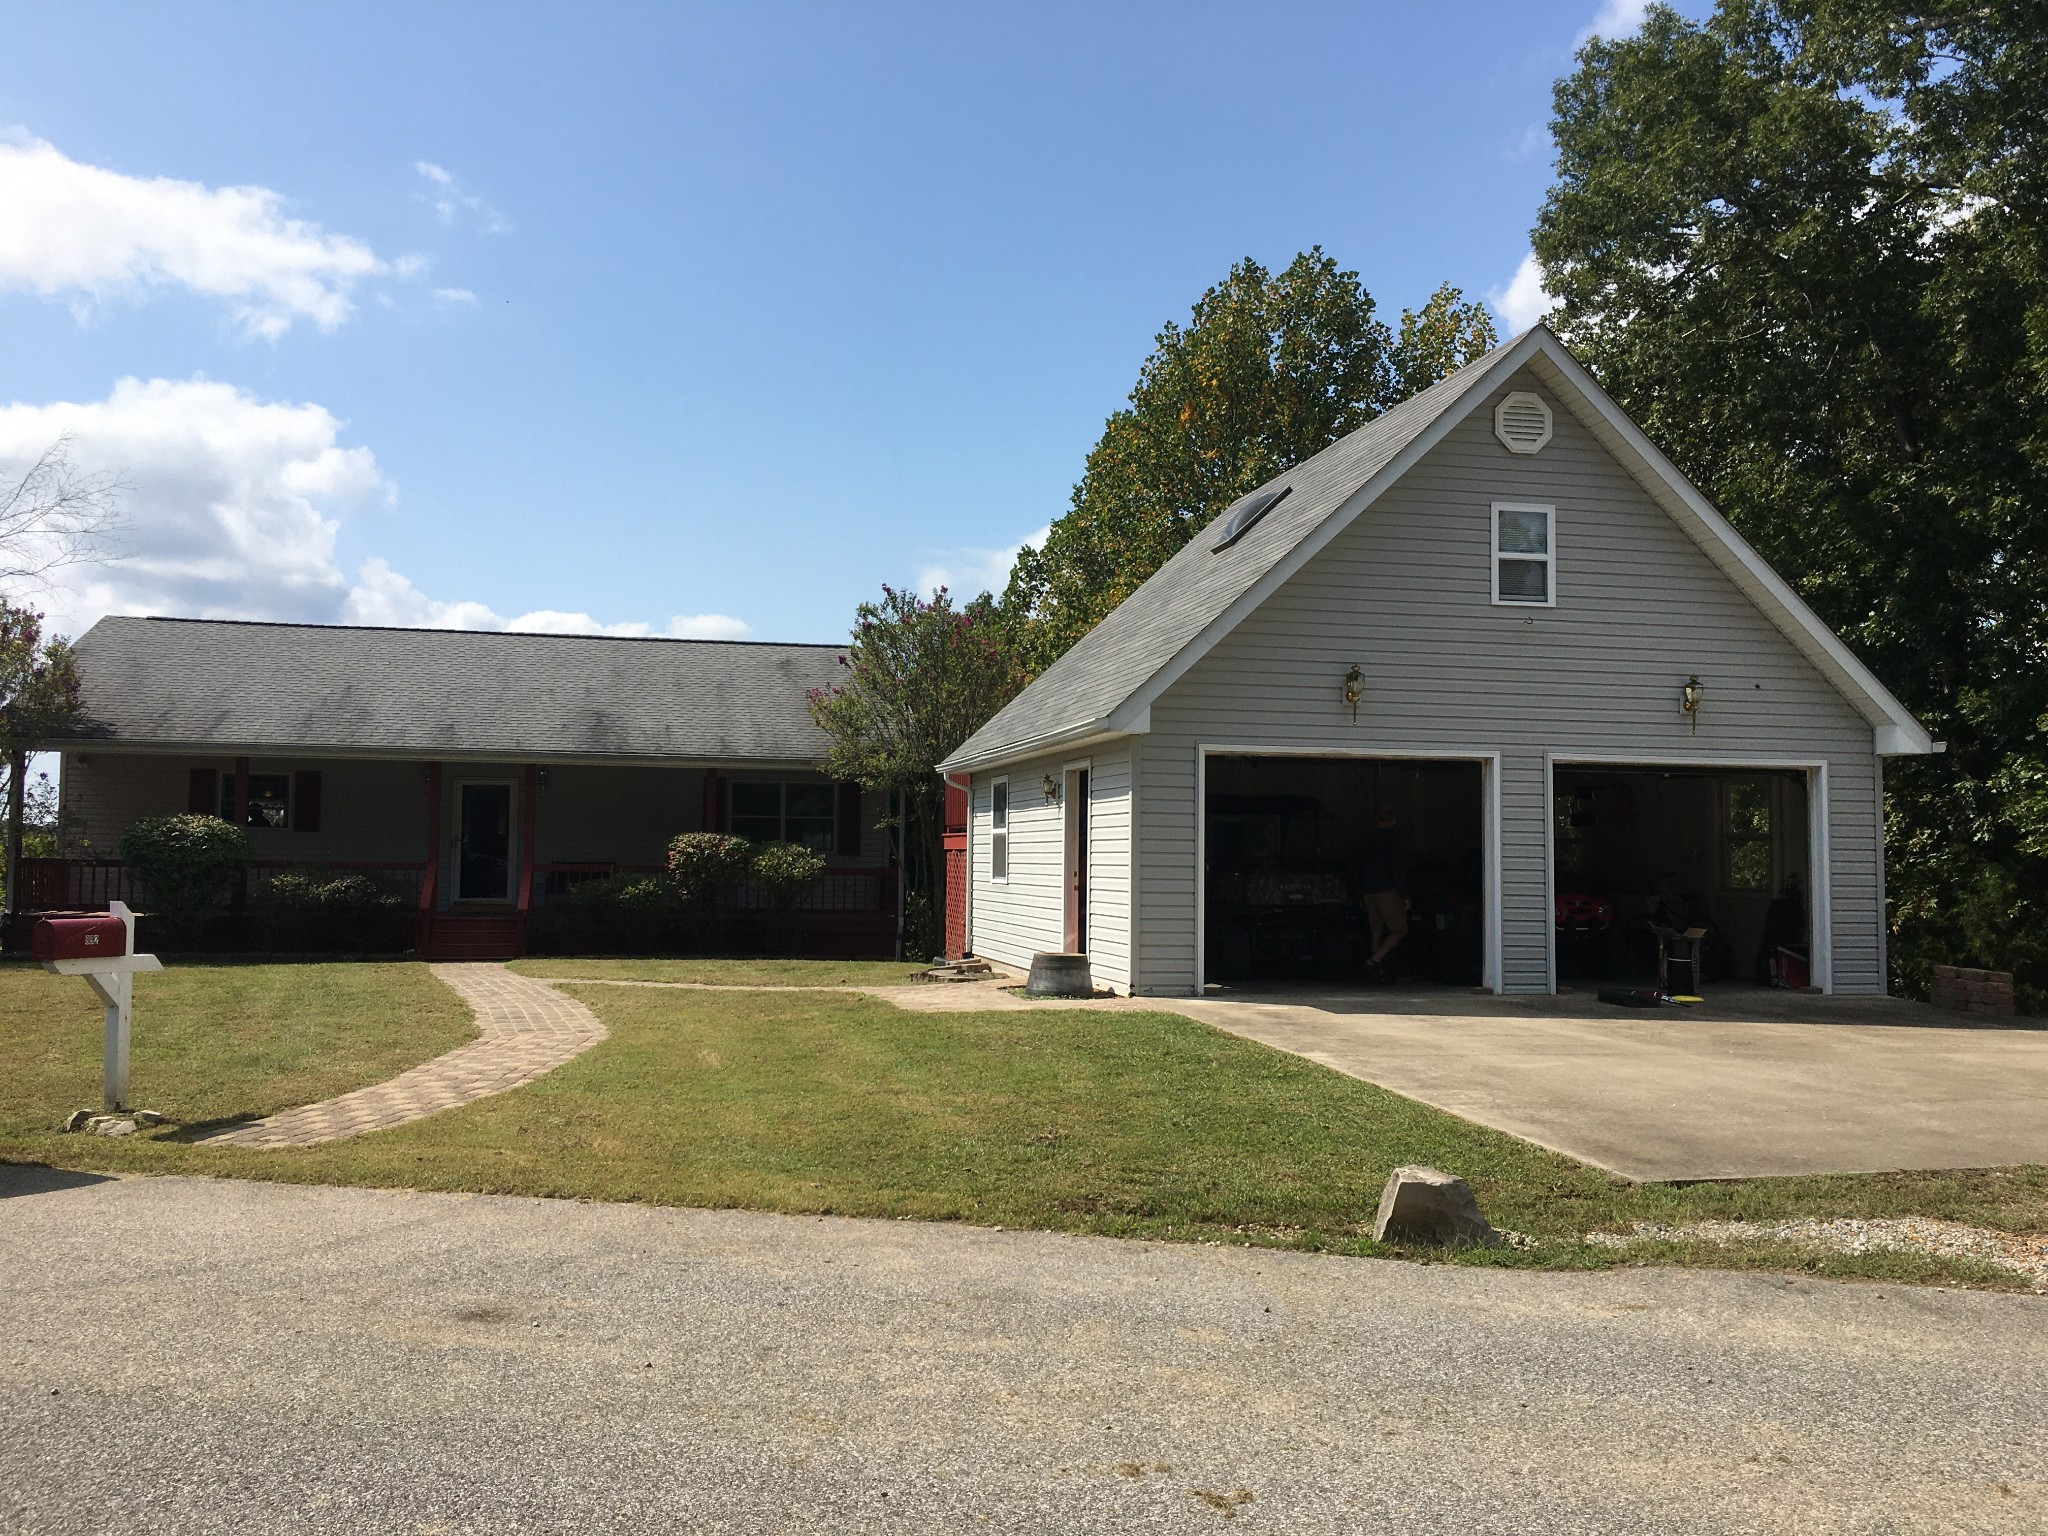 892 Whitley Way Property Photo - Eddyville, KY real estate listing